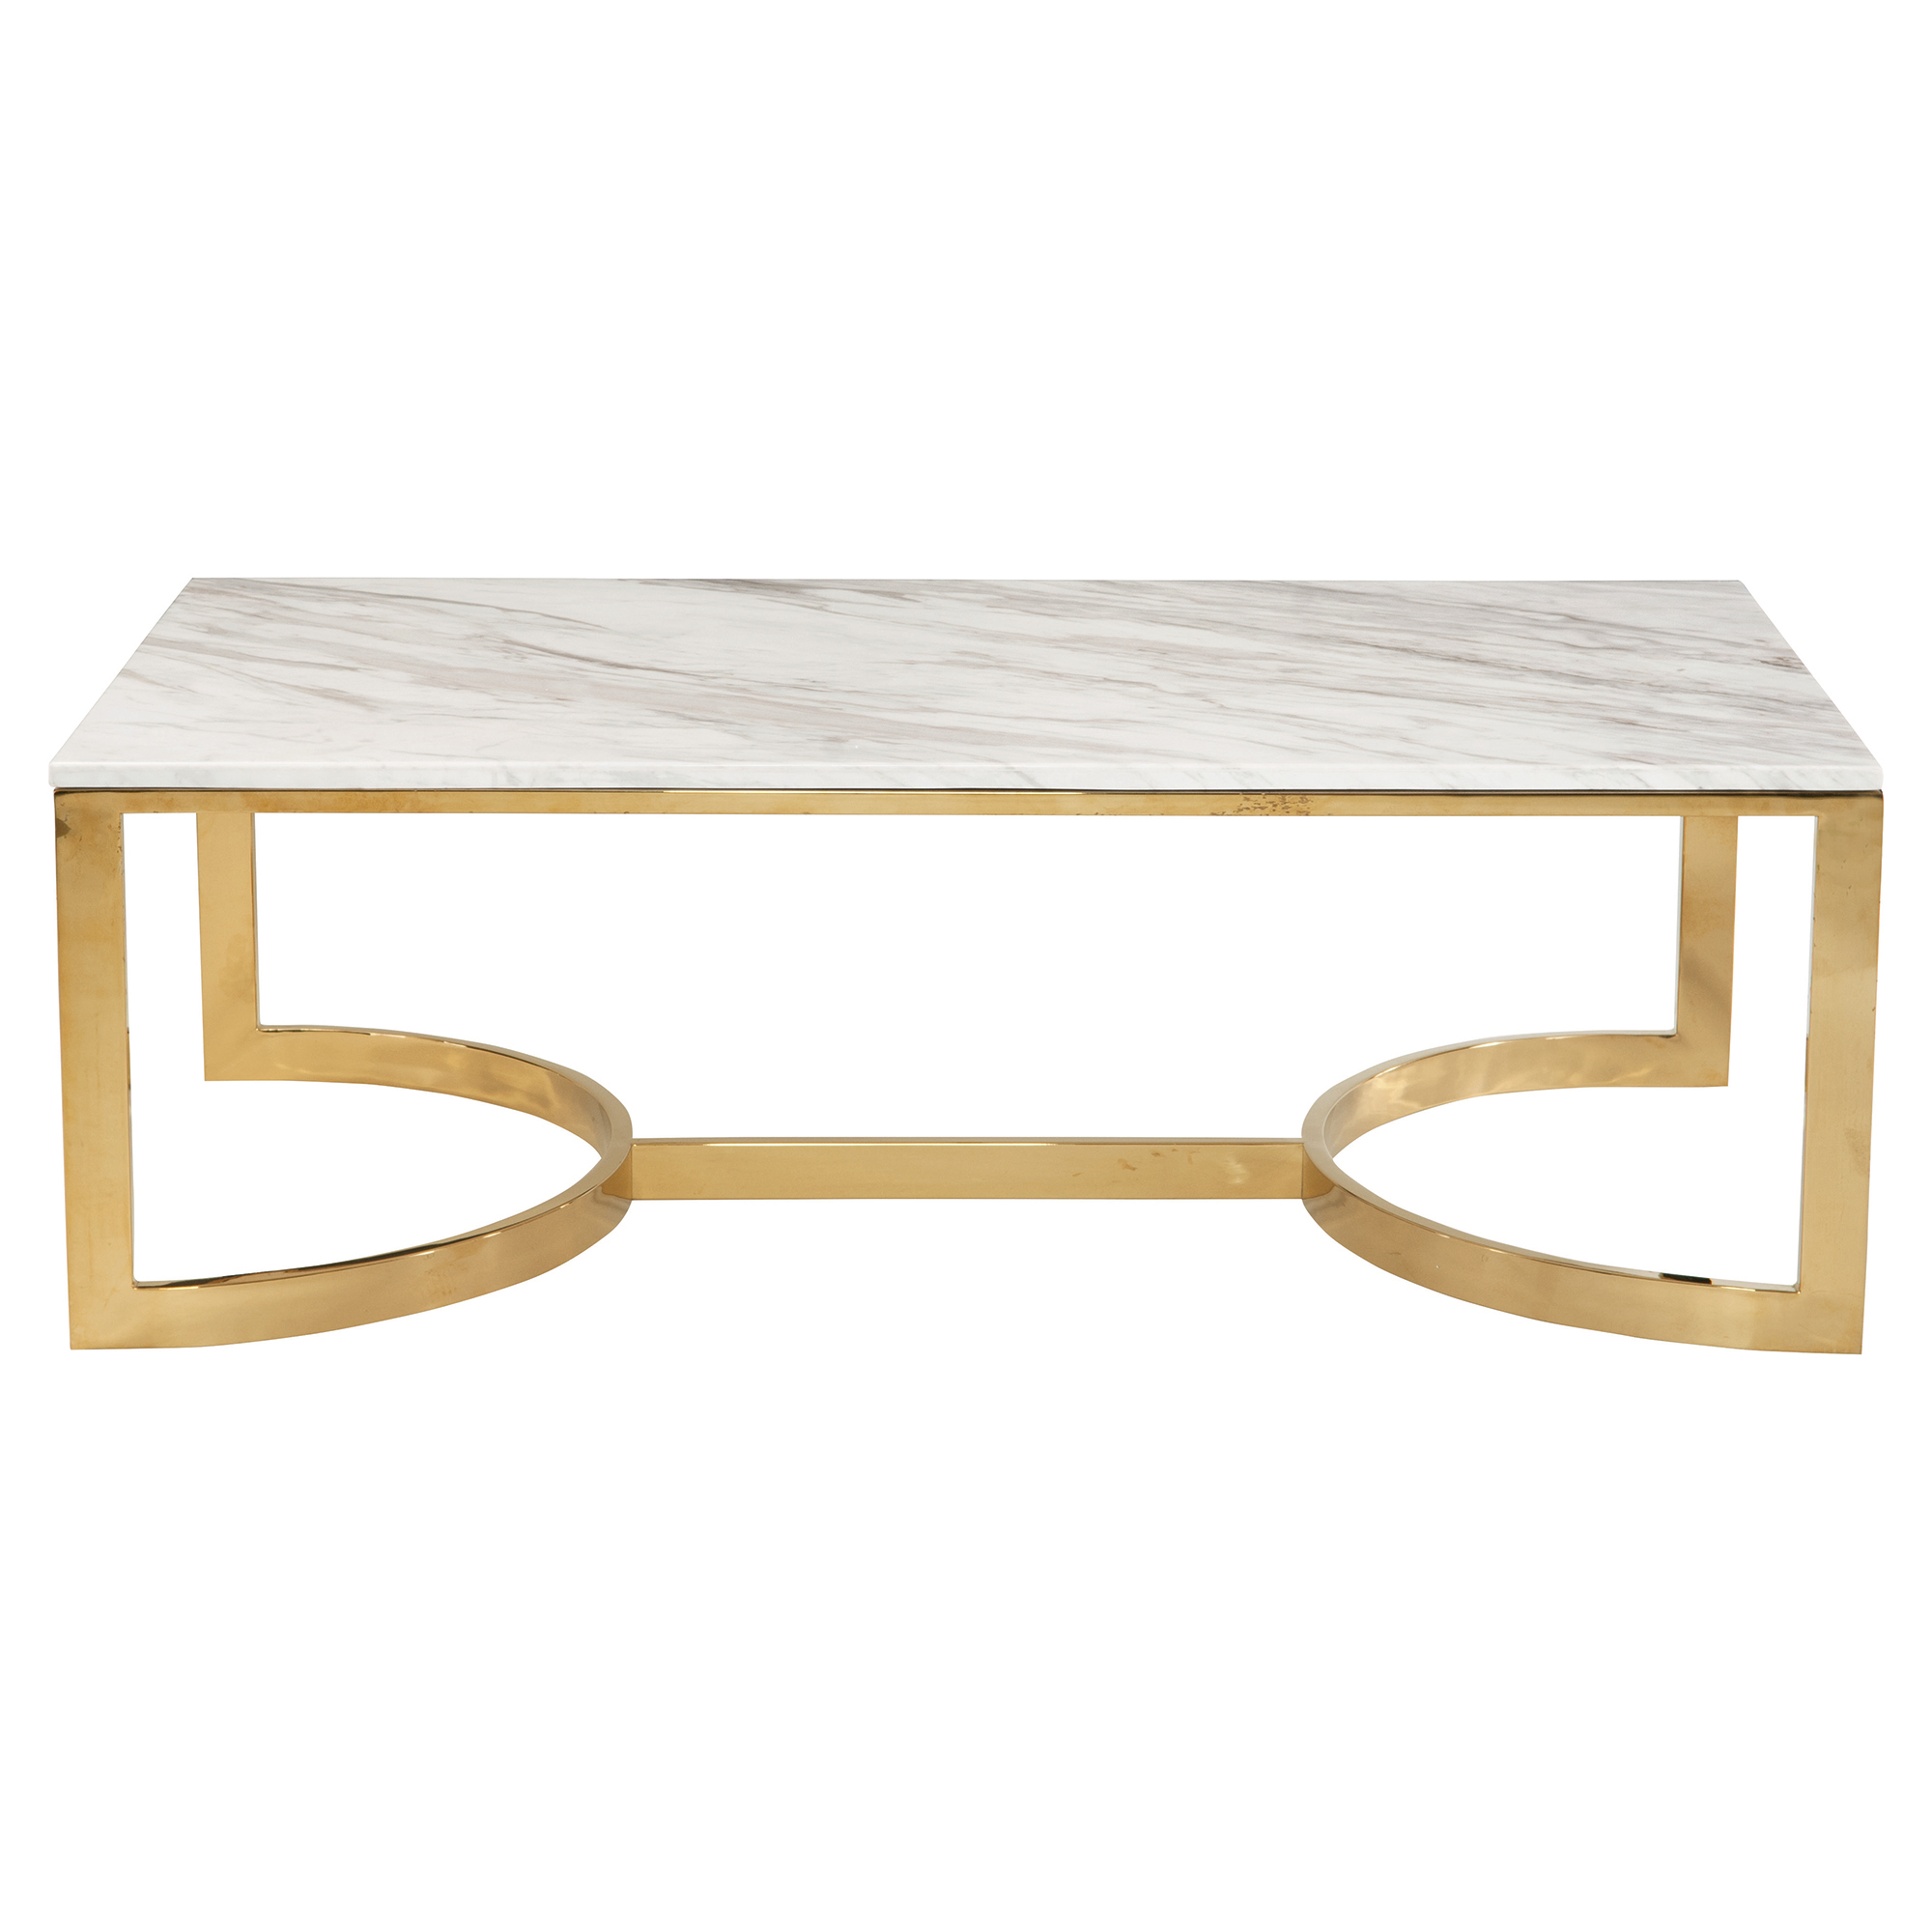 Designer Coffee Tables Eclectic Coffee Tables